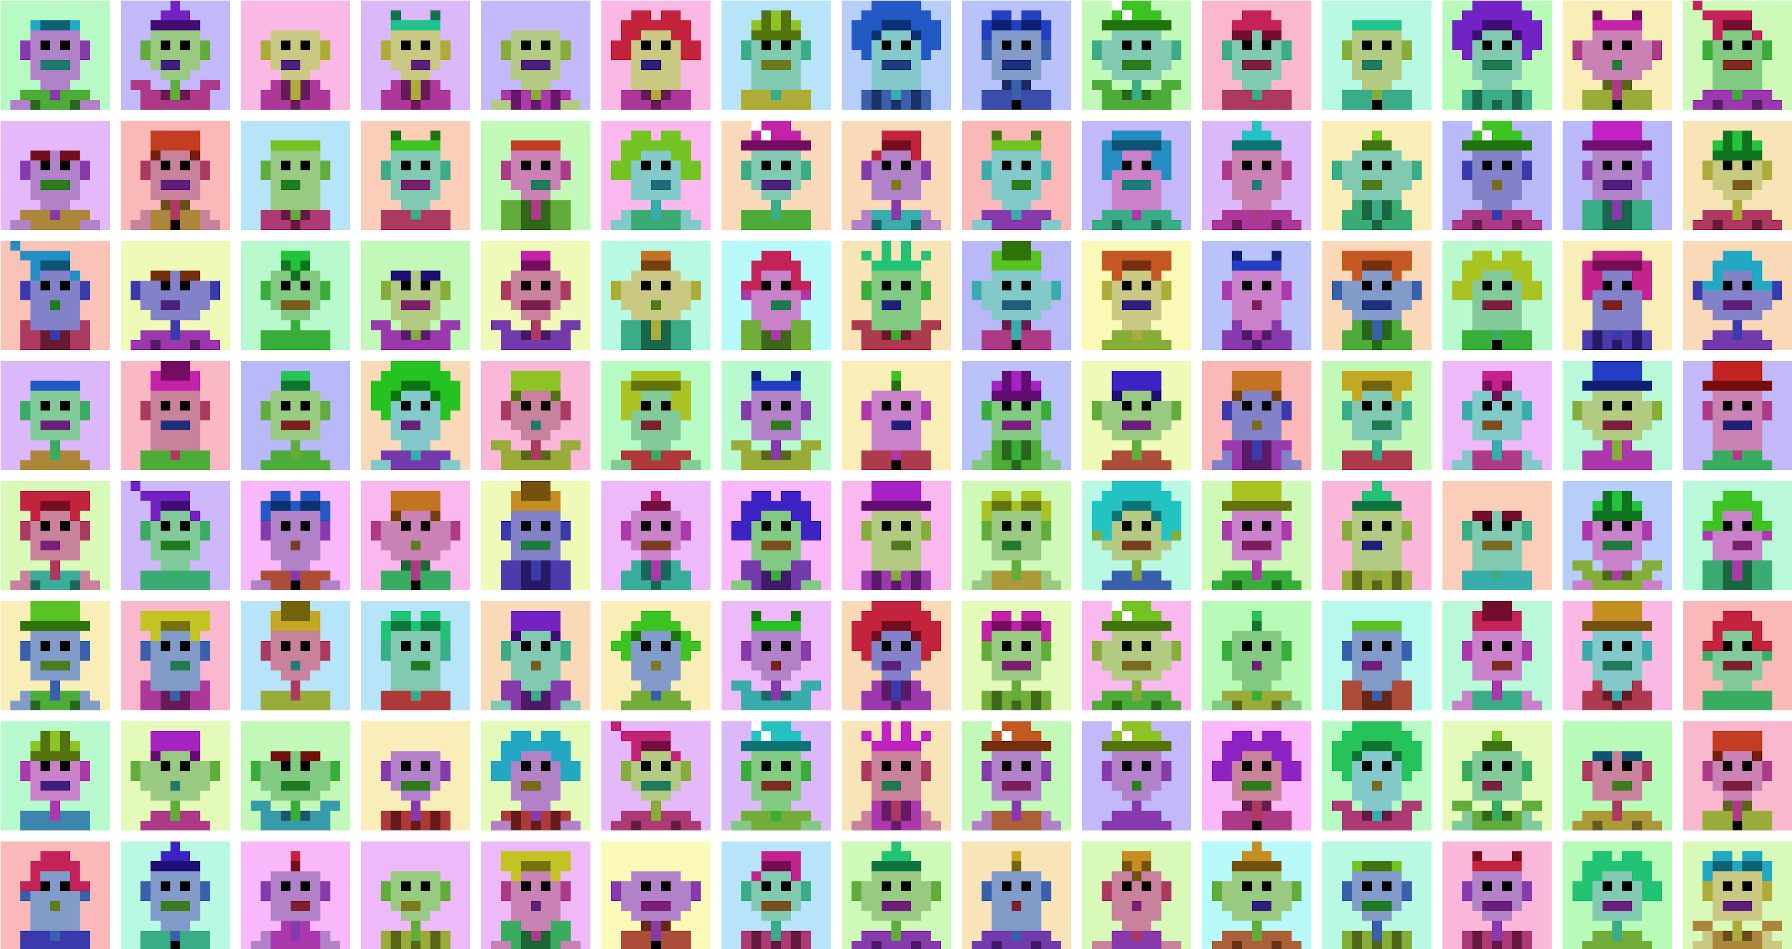 Decorative image of pixel avatars set in multiple columns and rows.